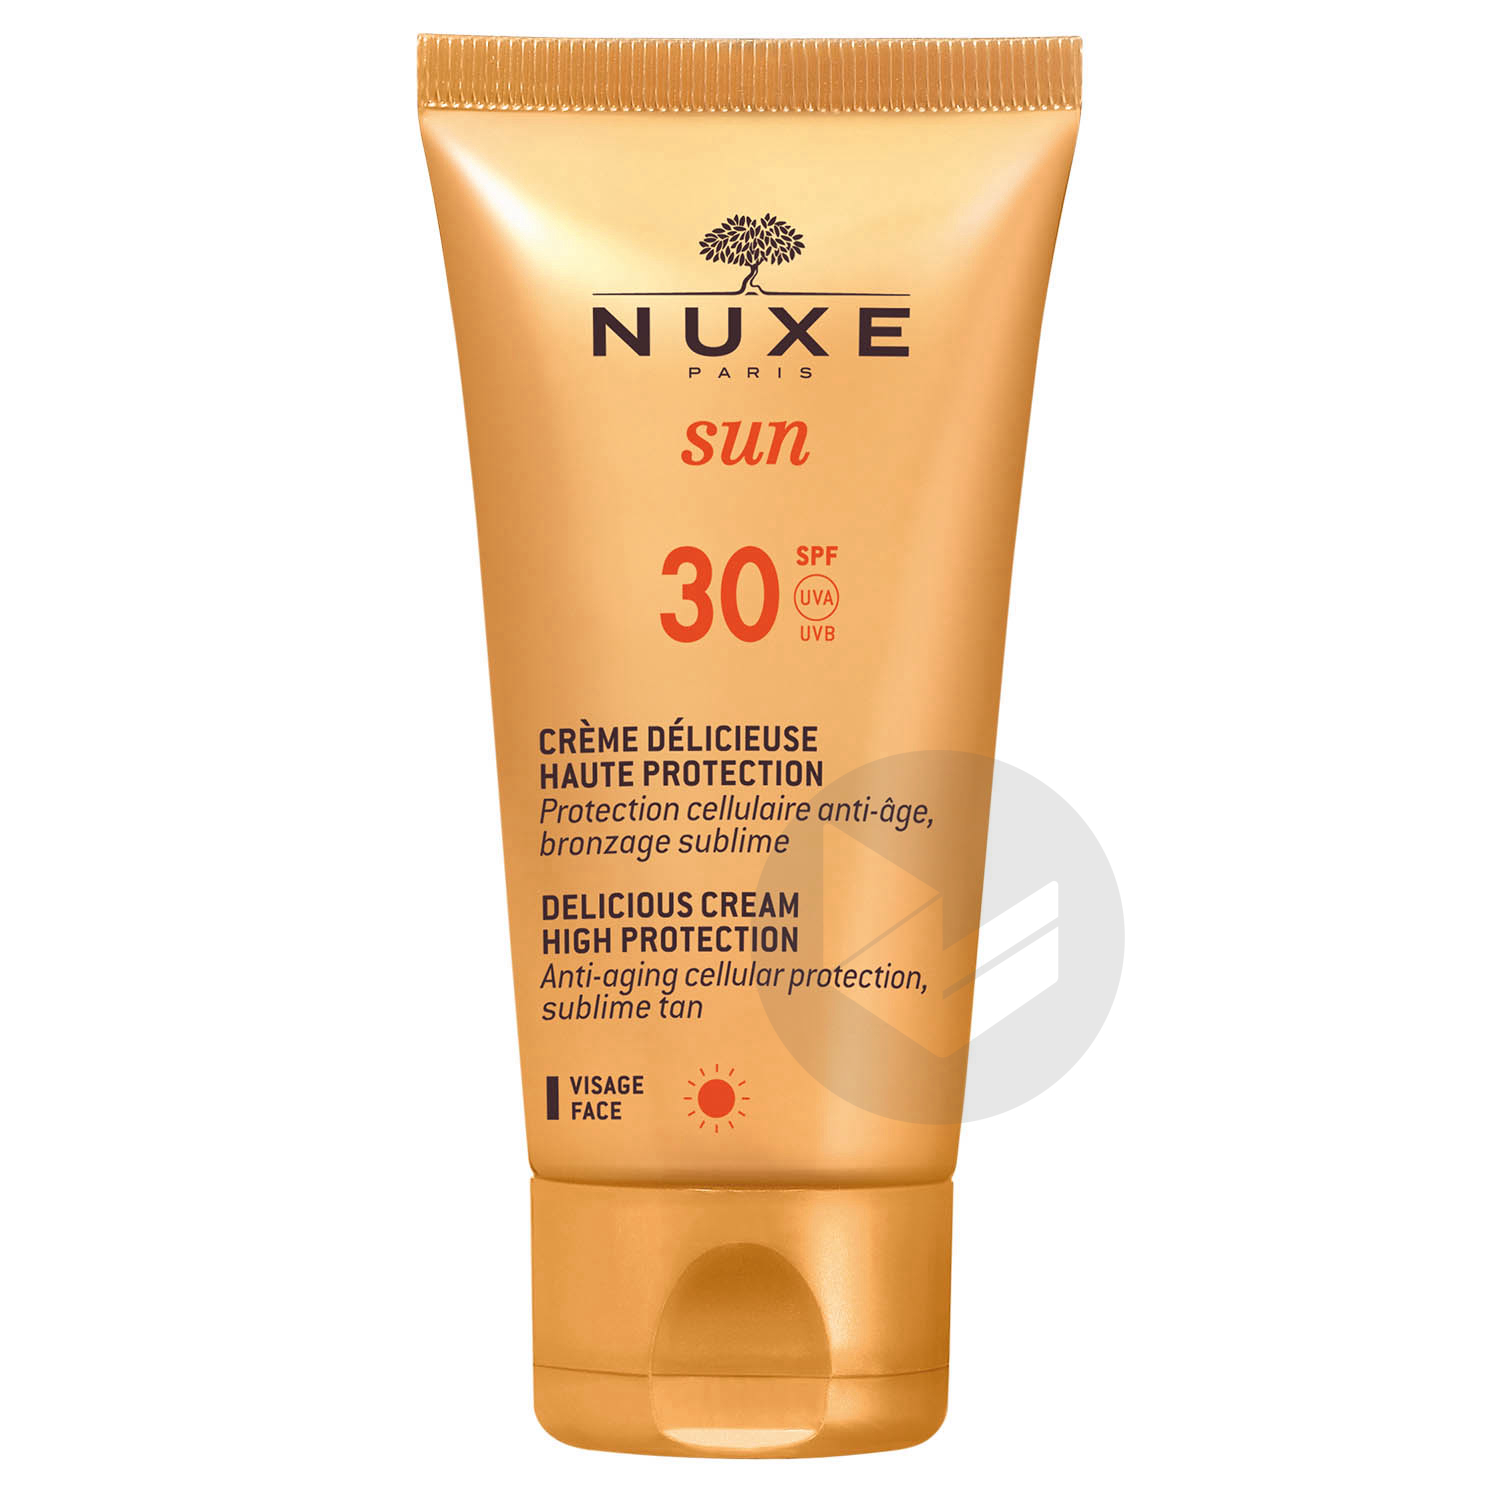 Creme Delicieuse Haute Protection Spf 30 Sun